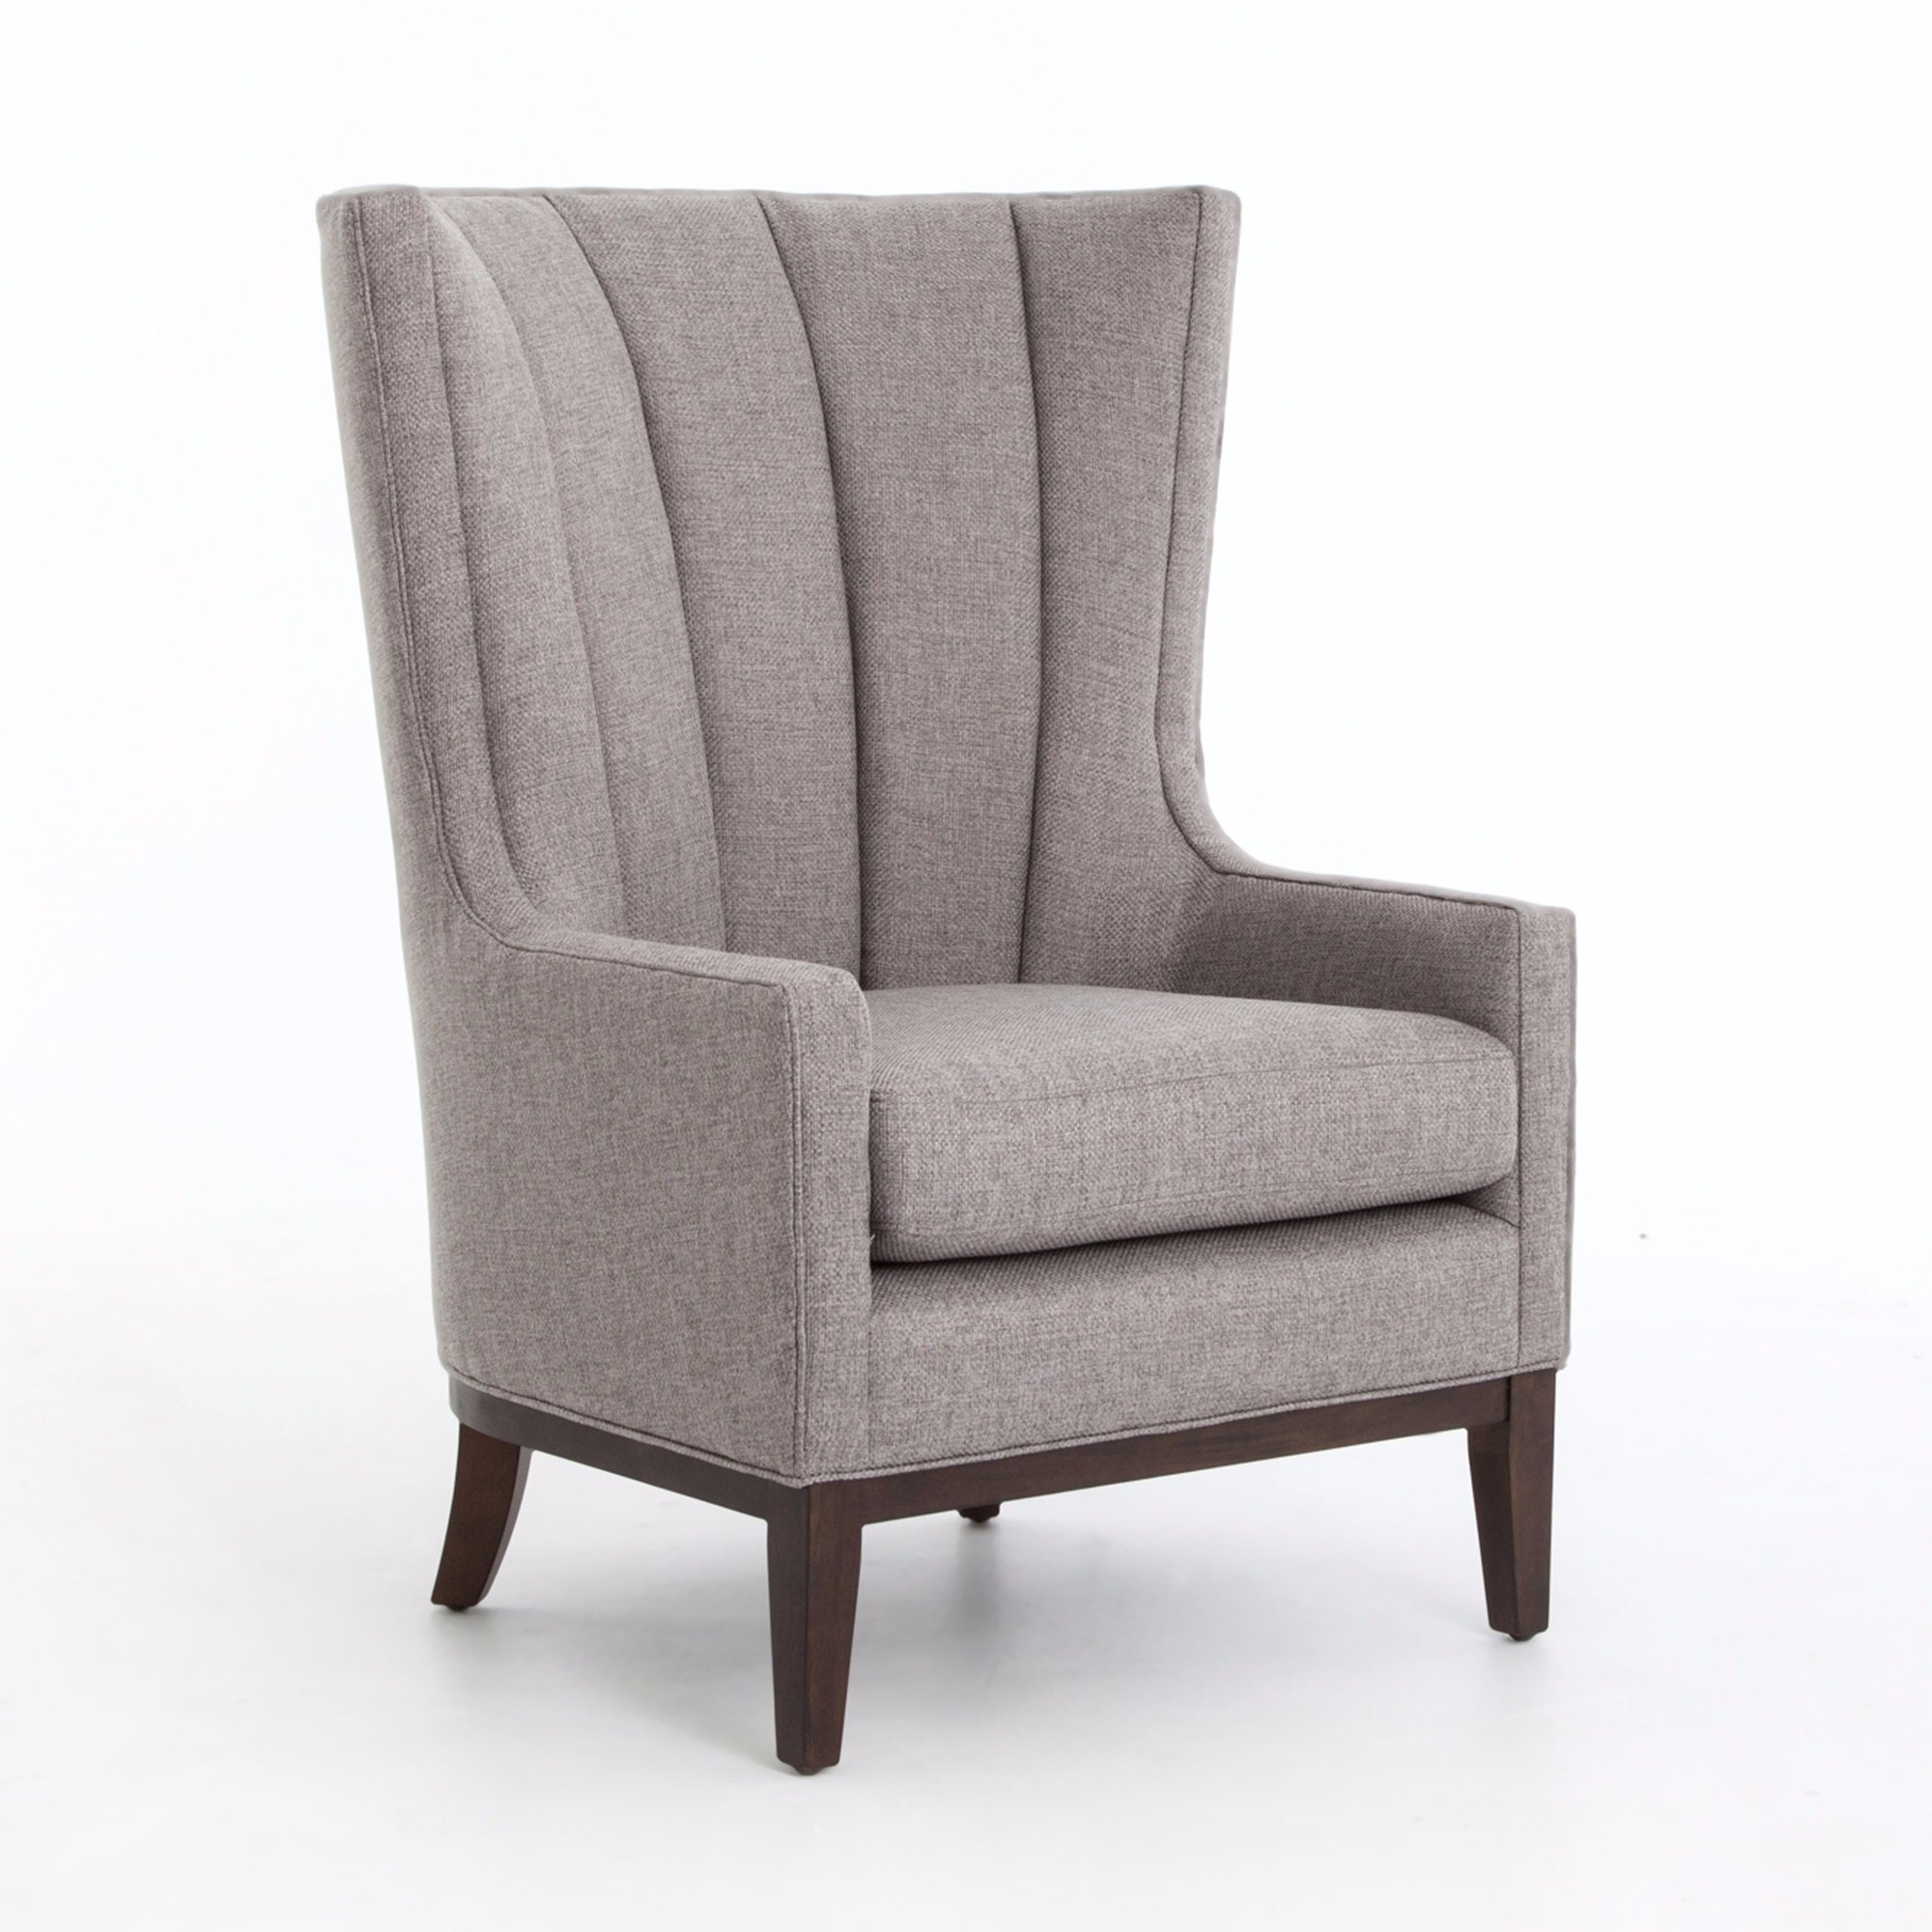 wing chair-1384468 FJRWQAY